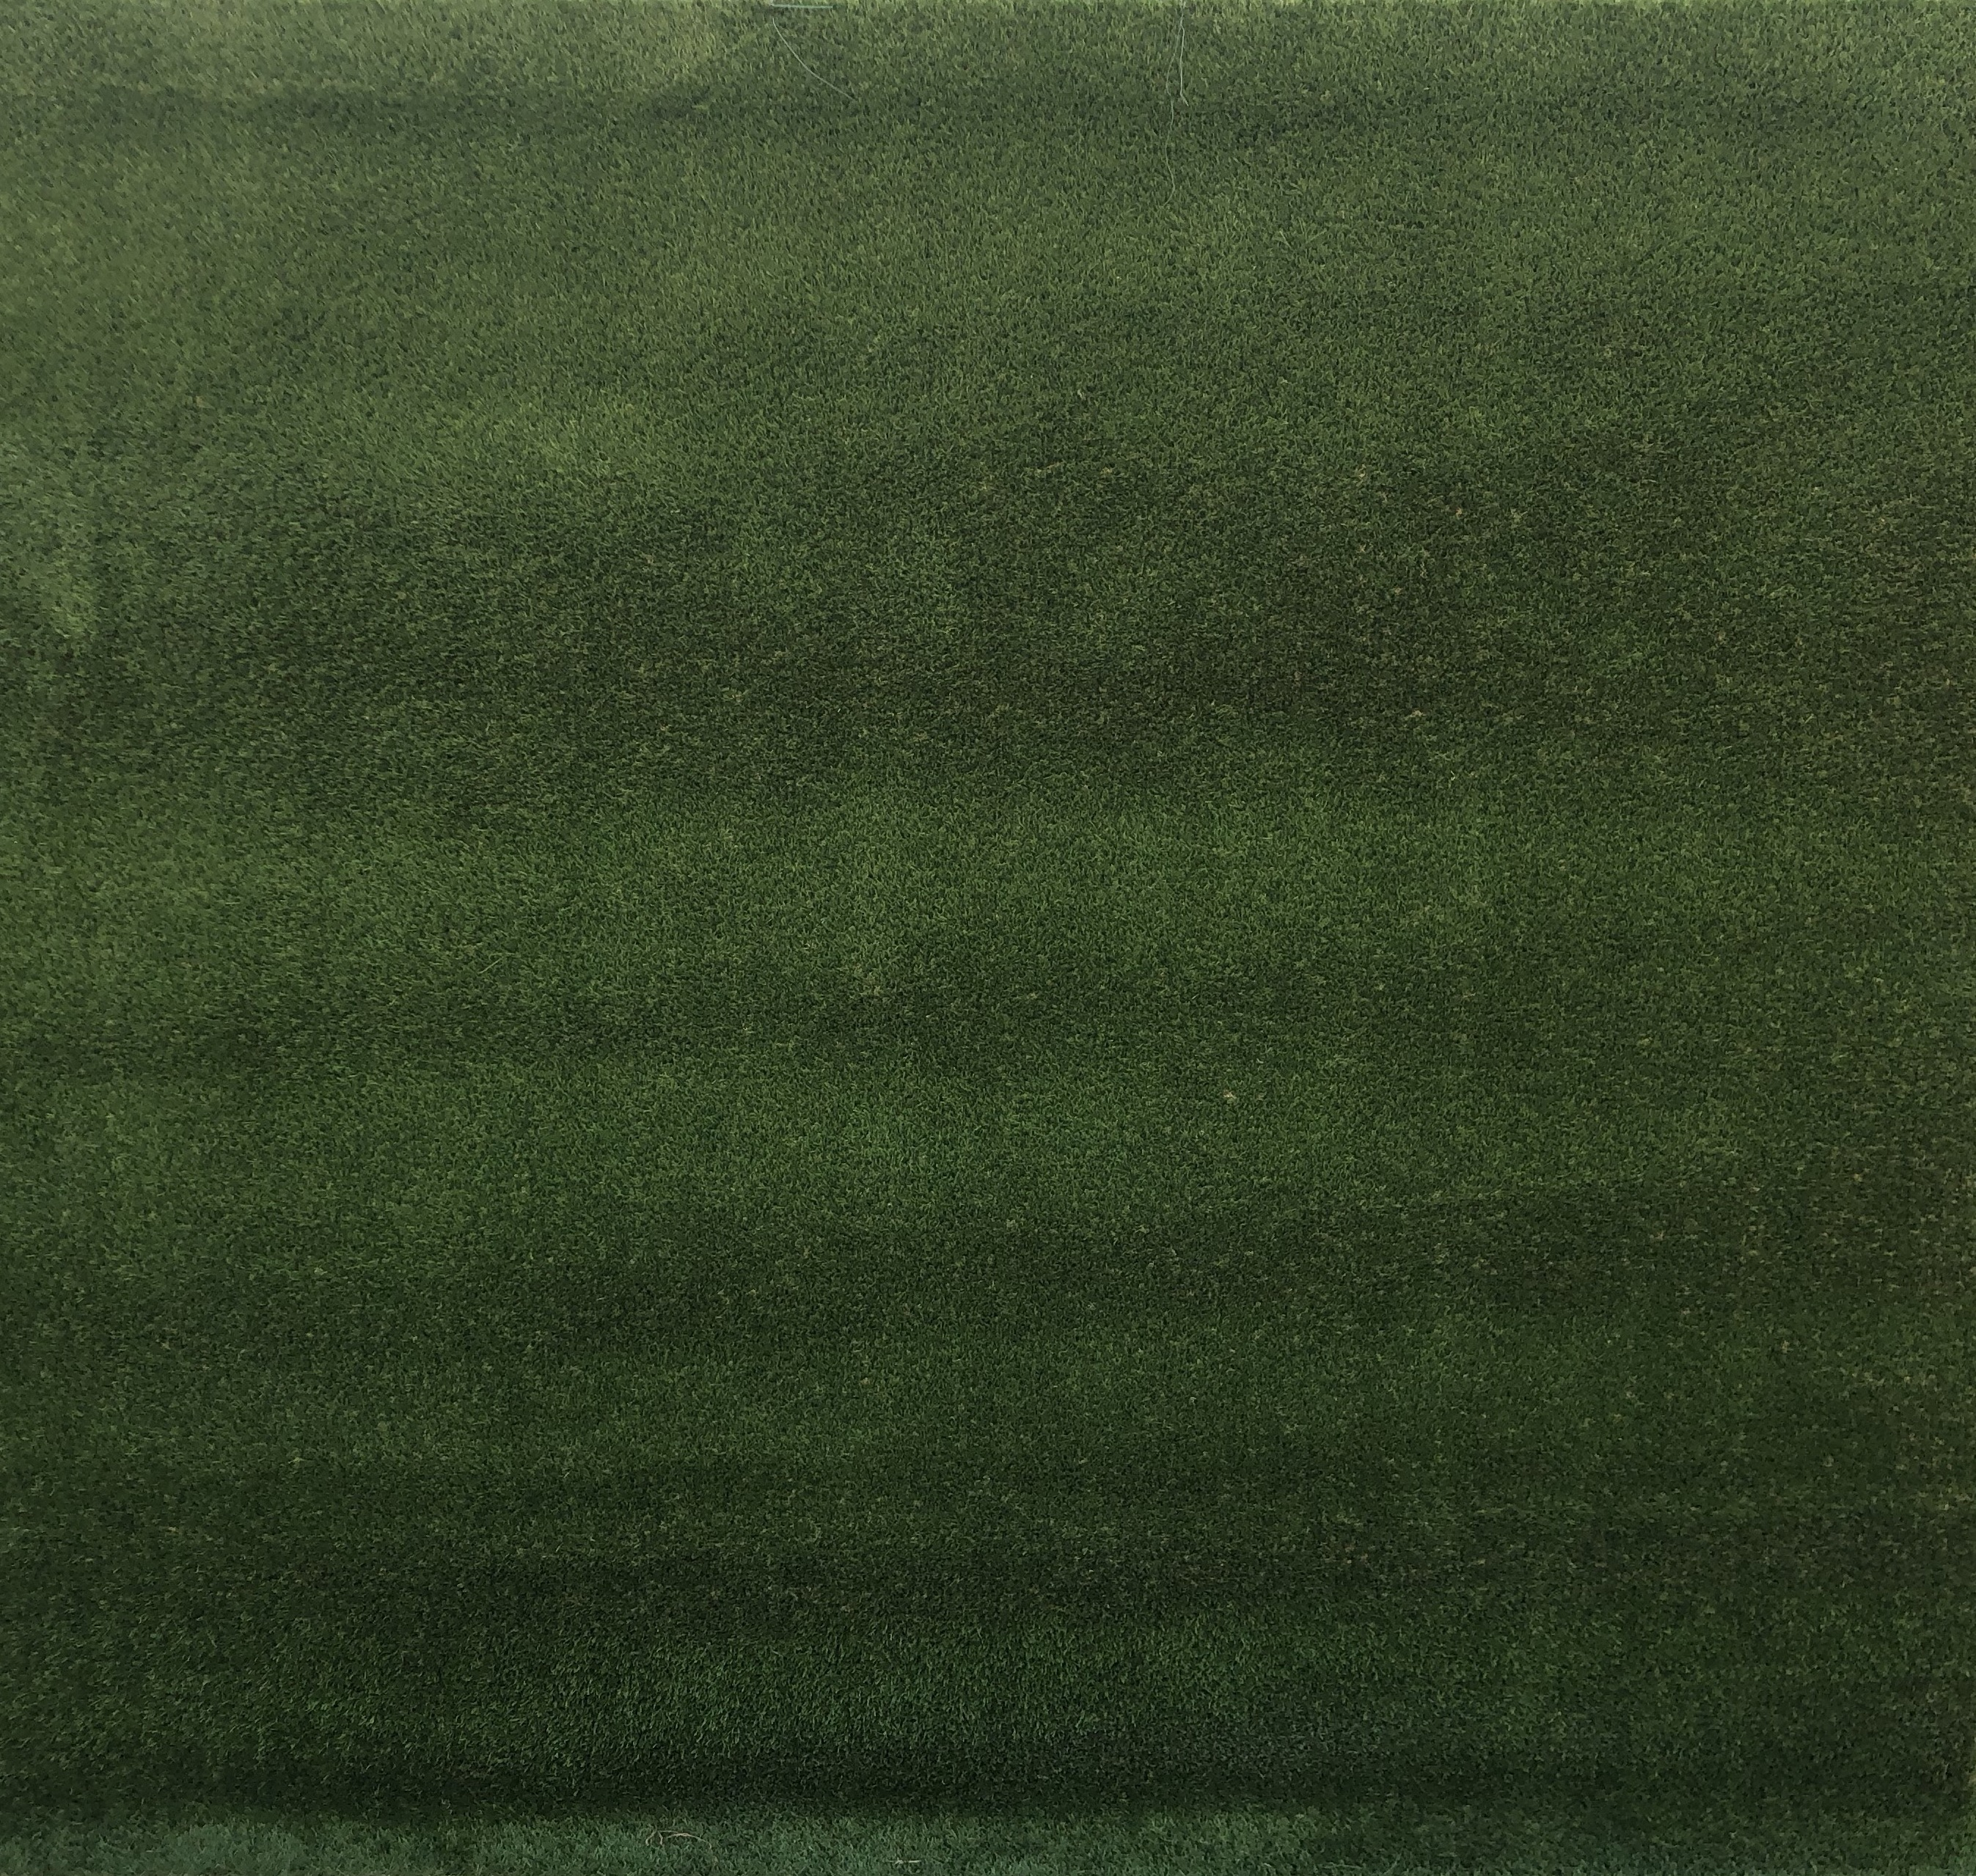 grass-backdrop-2m-wide